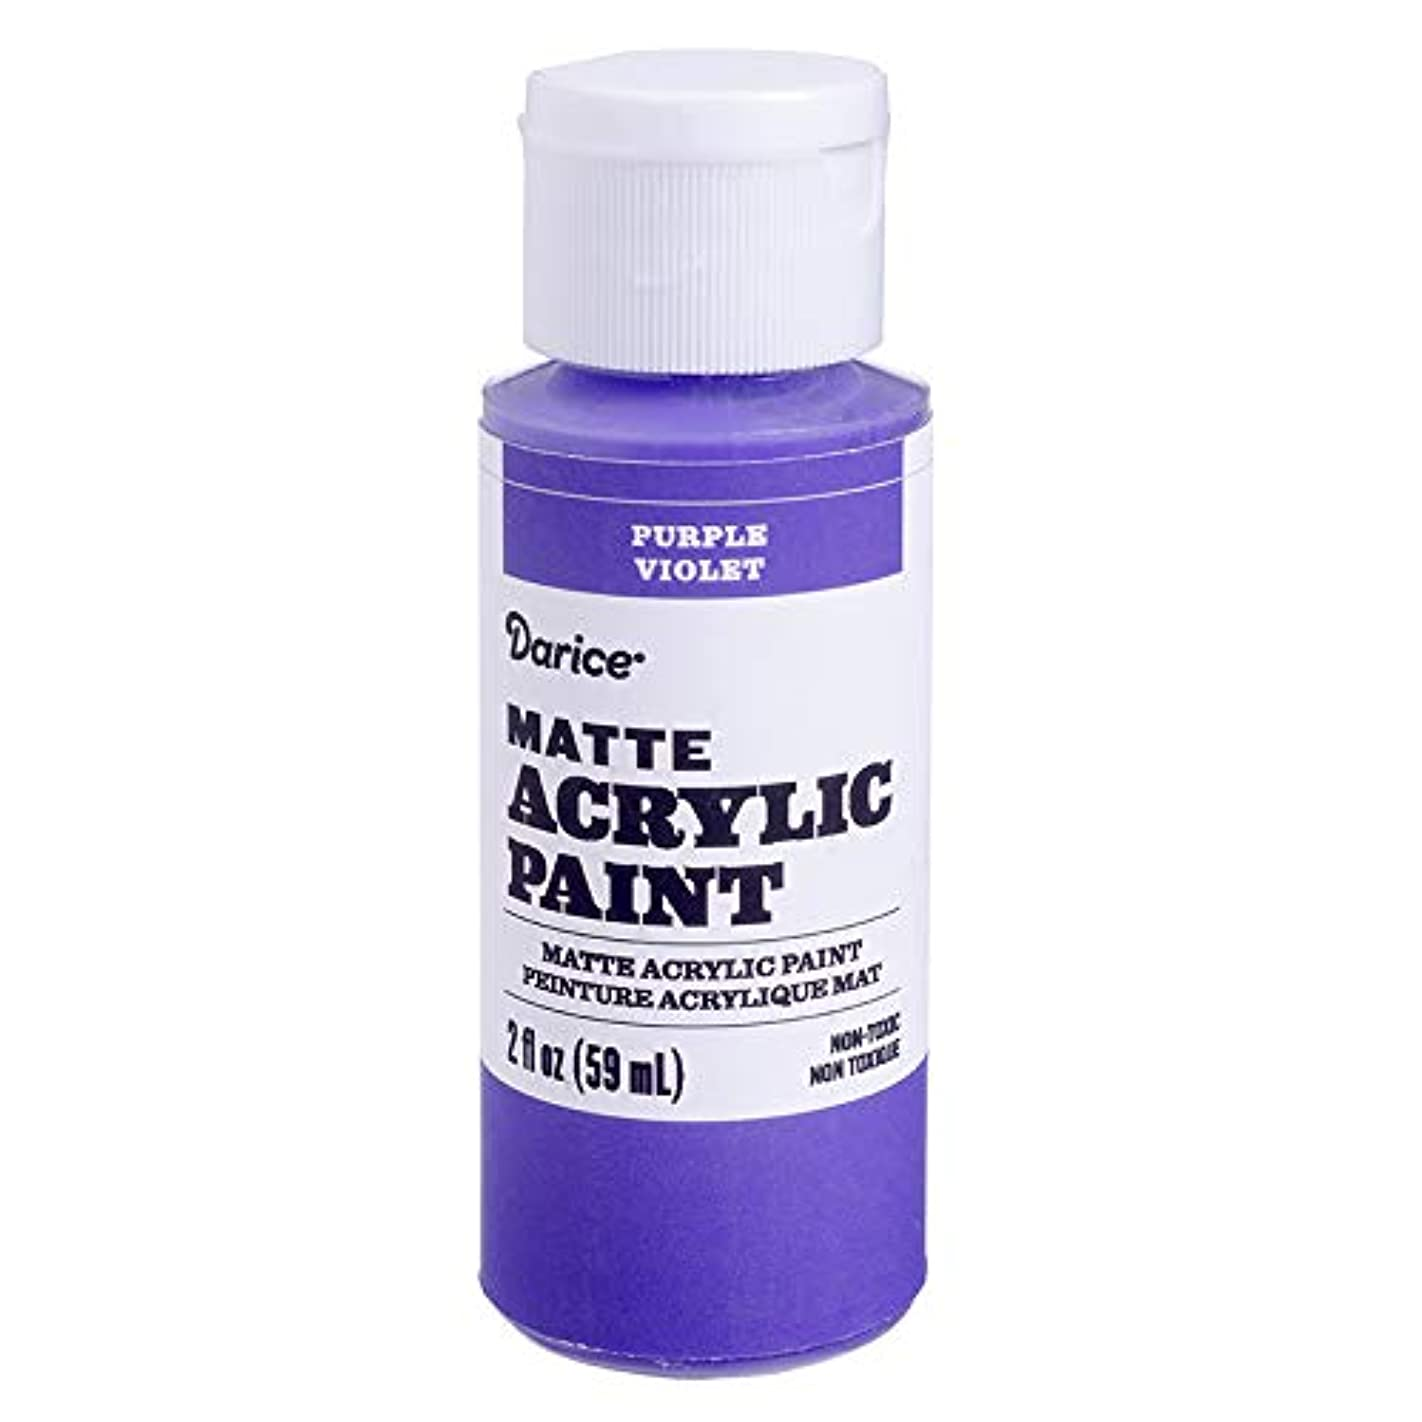 Darice DPCS185-63 Matte Purple, 2 Ounces Acrylic Paint, m95079300080